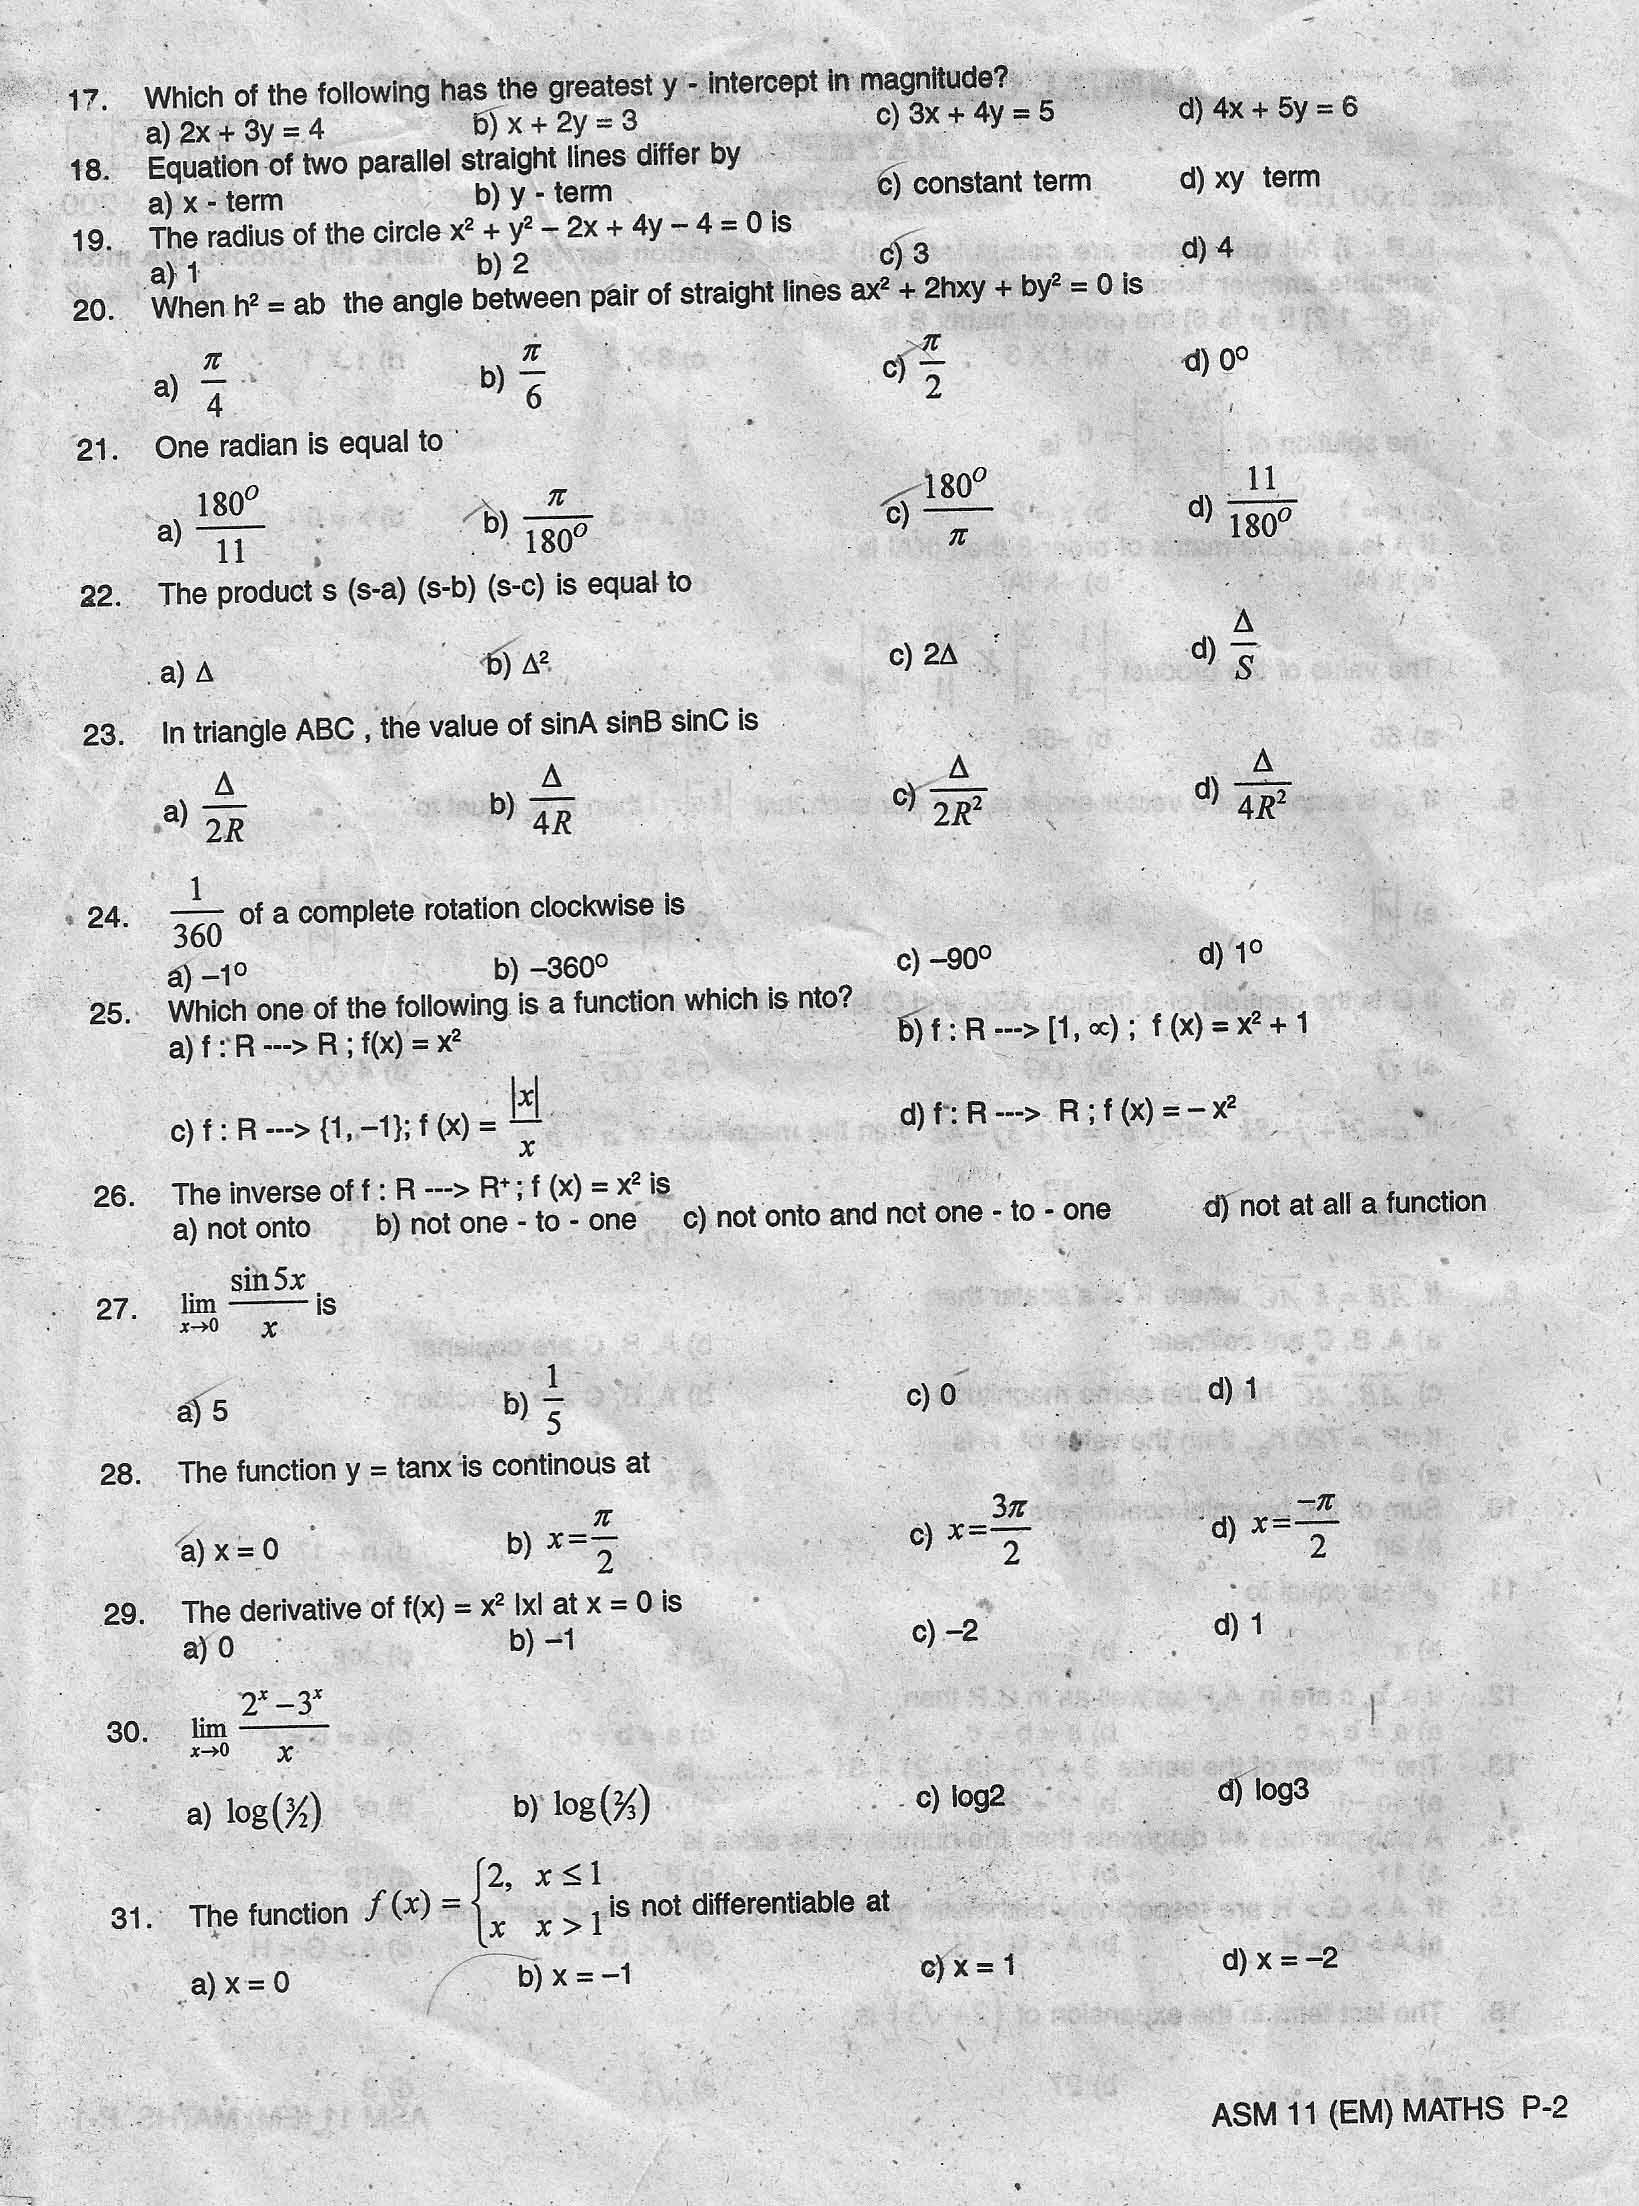 Tamil Nadu State Common Examination model question papers